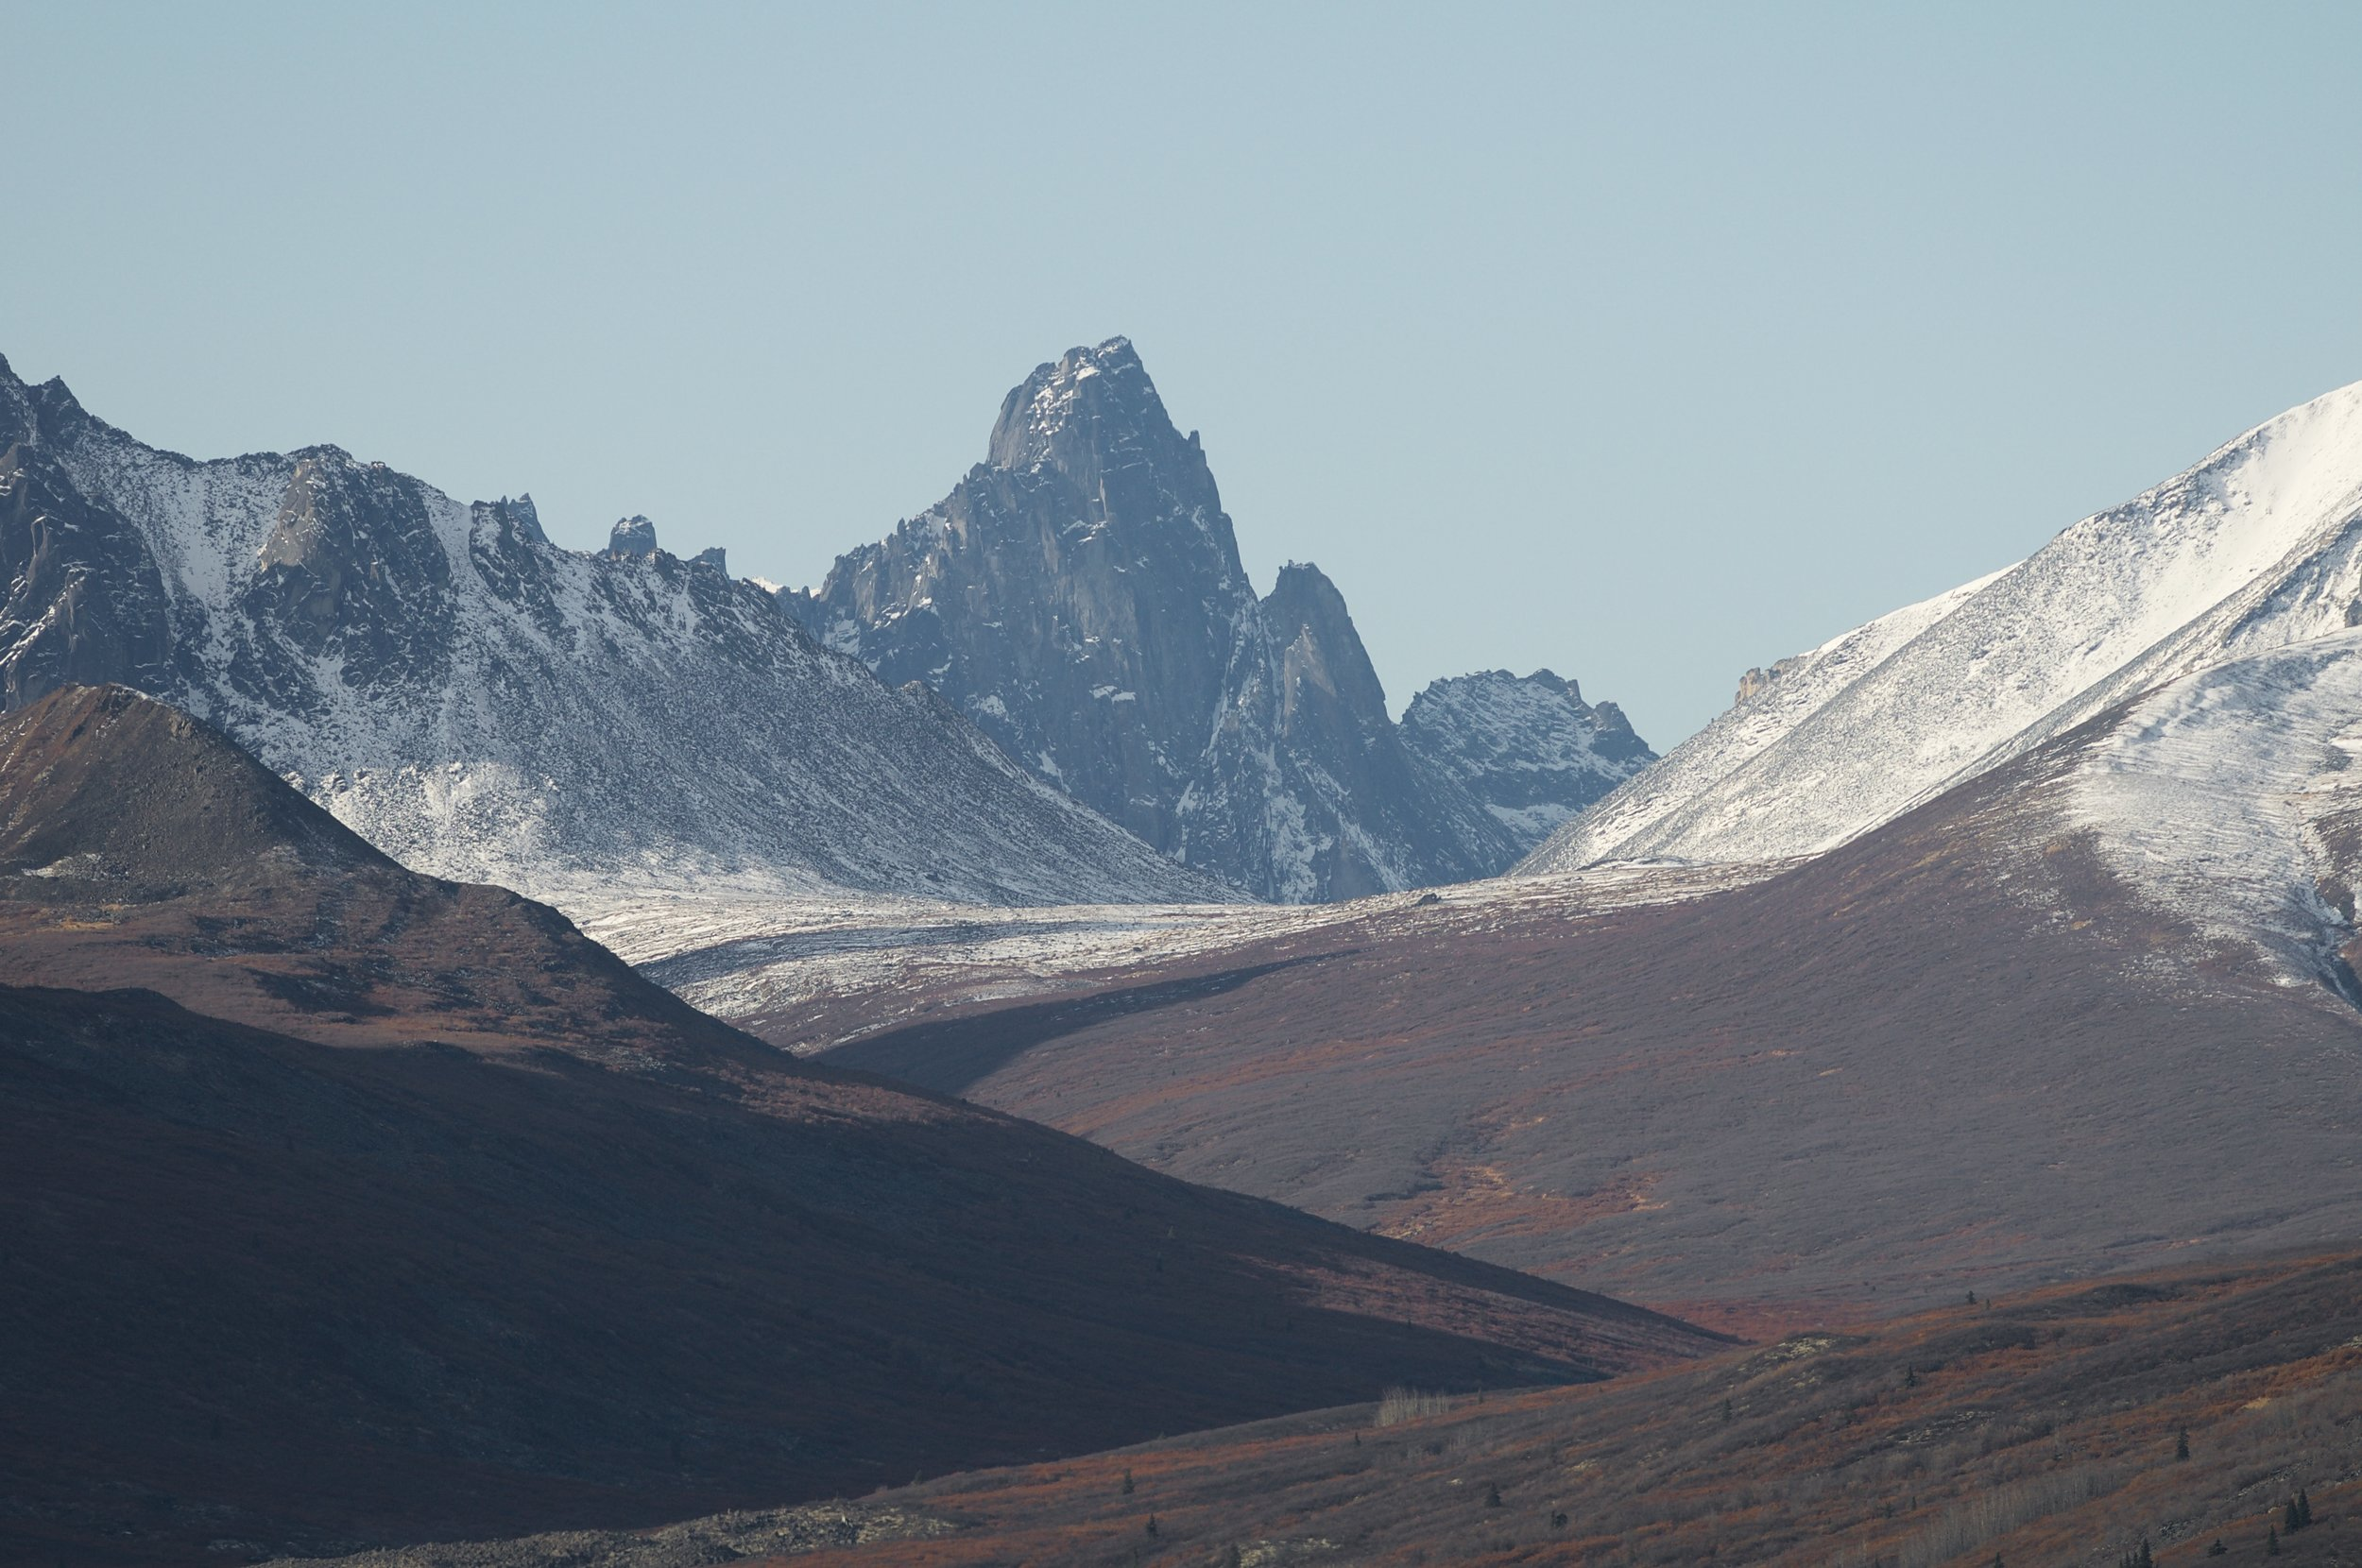 Classic peak in the Tombstone National Park.